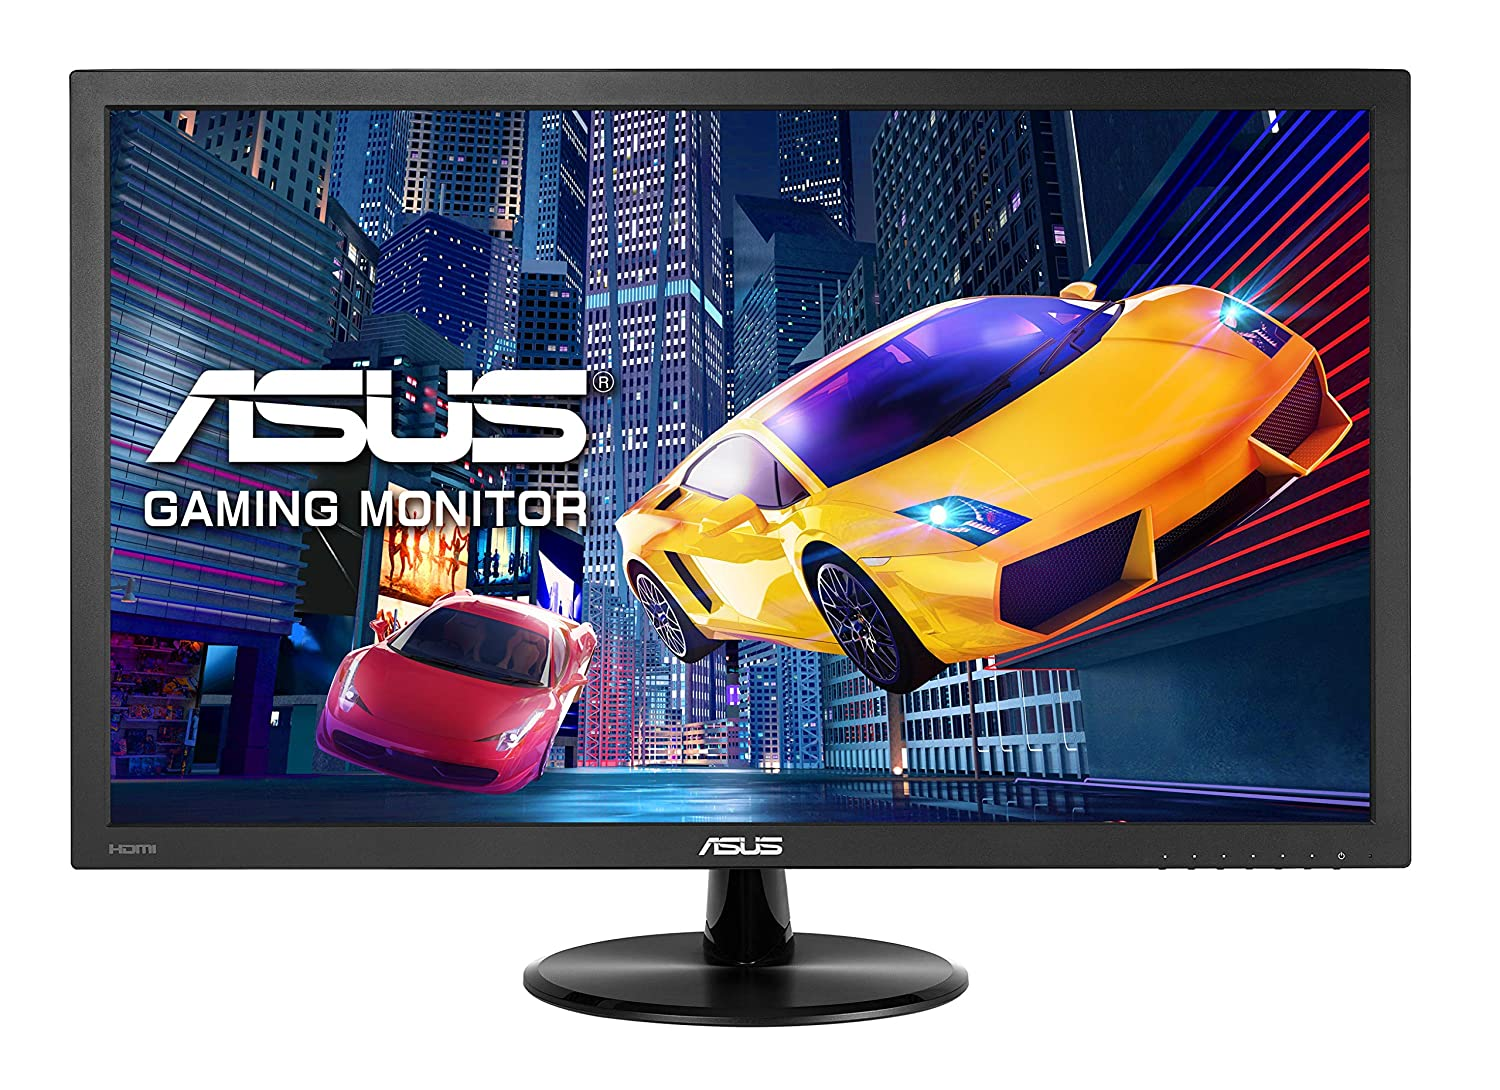 Asus VP228HE - Monitor LCD de 21.5' para PC (1920 x 1080, Full HD, 1 ms, HDMI, 200 CD/m² ) Color Negro Asustek Asus VP228HE - Monitor LCD de 21.5 para PC (1920 x 1080 200 CD/m²) Color Negro 90LM01K0-B05170